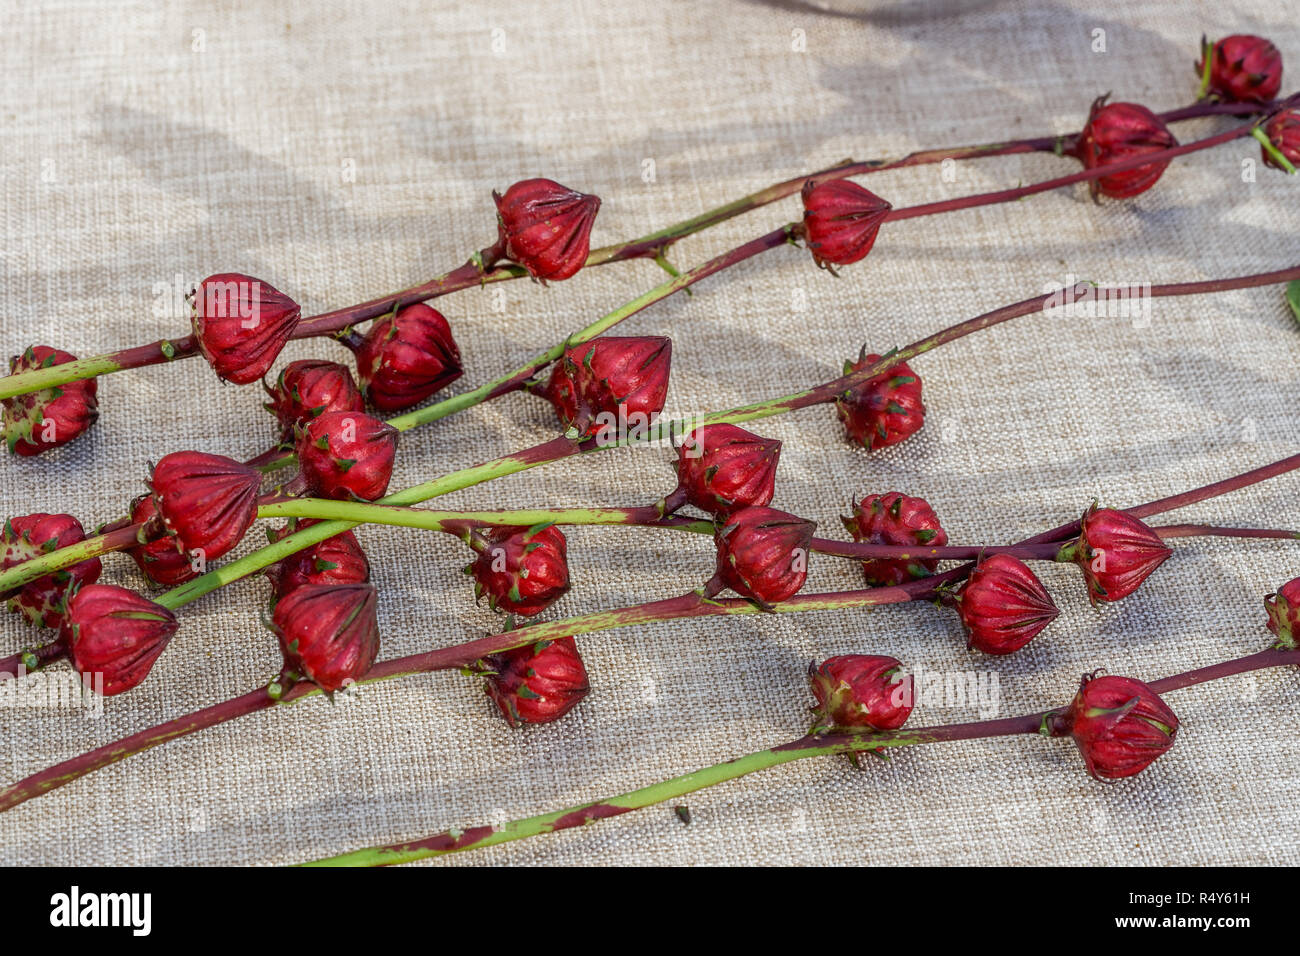 edible hibiscus calyxes for sale at the farmers market sitting on a cloth covered table - Stock Image